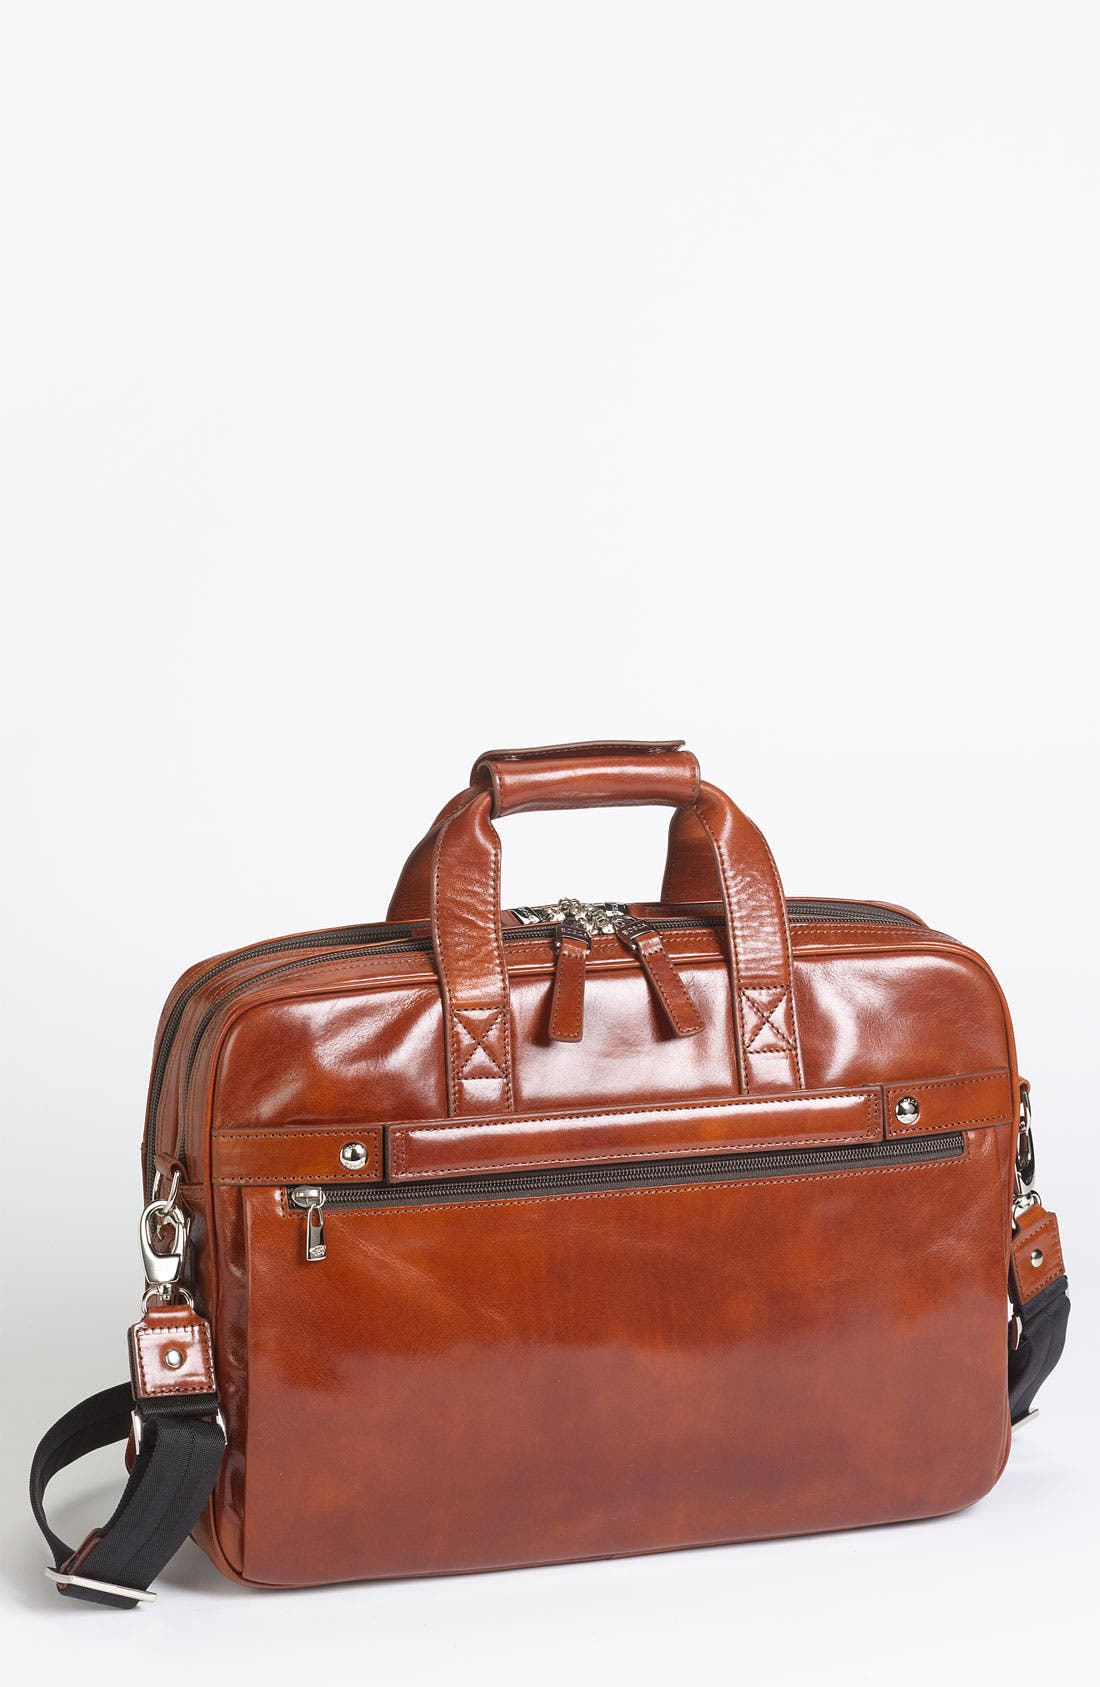 Main Image - Bosca Double Compartment Leather Briefcase